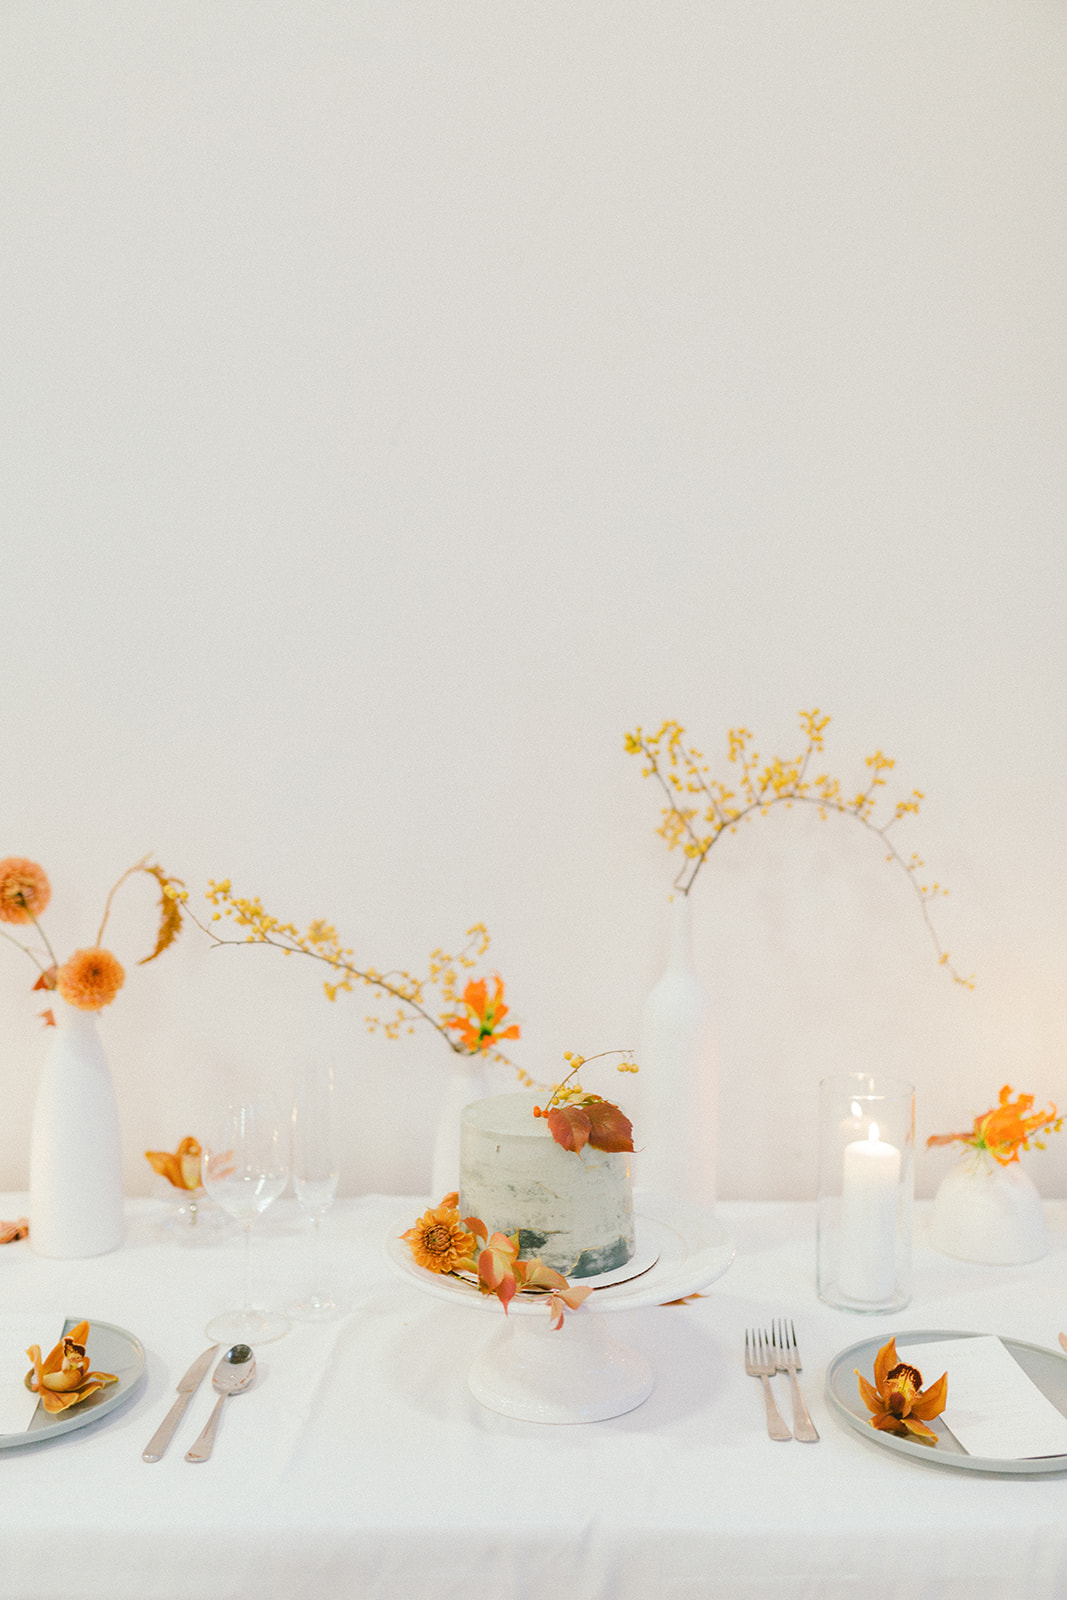 Modern Art Wedding Reception Table by The Lovliest Day Wedding and Events in Vancouver